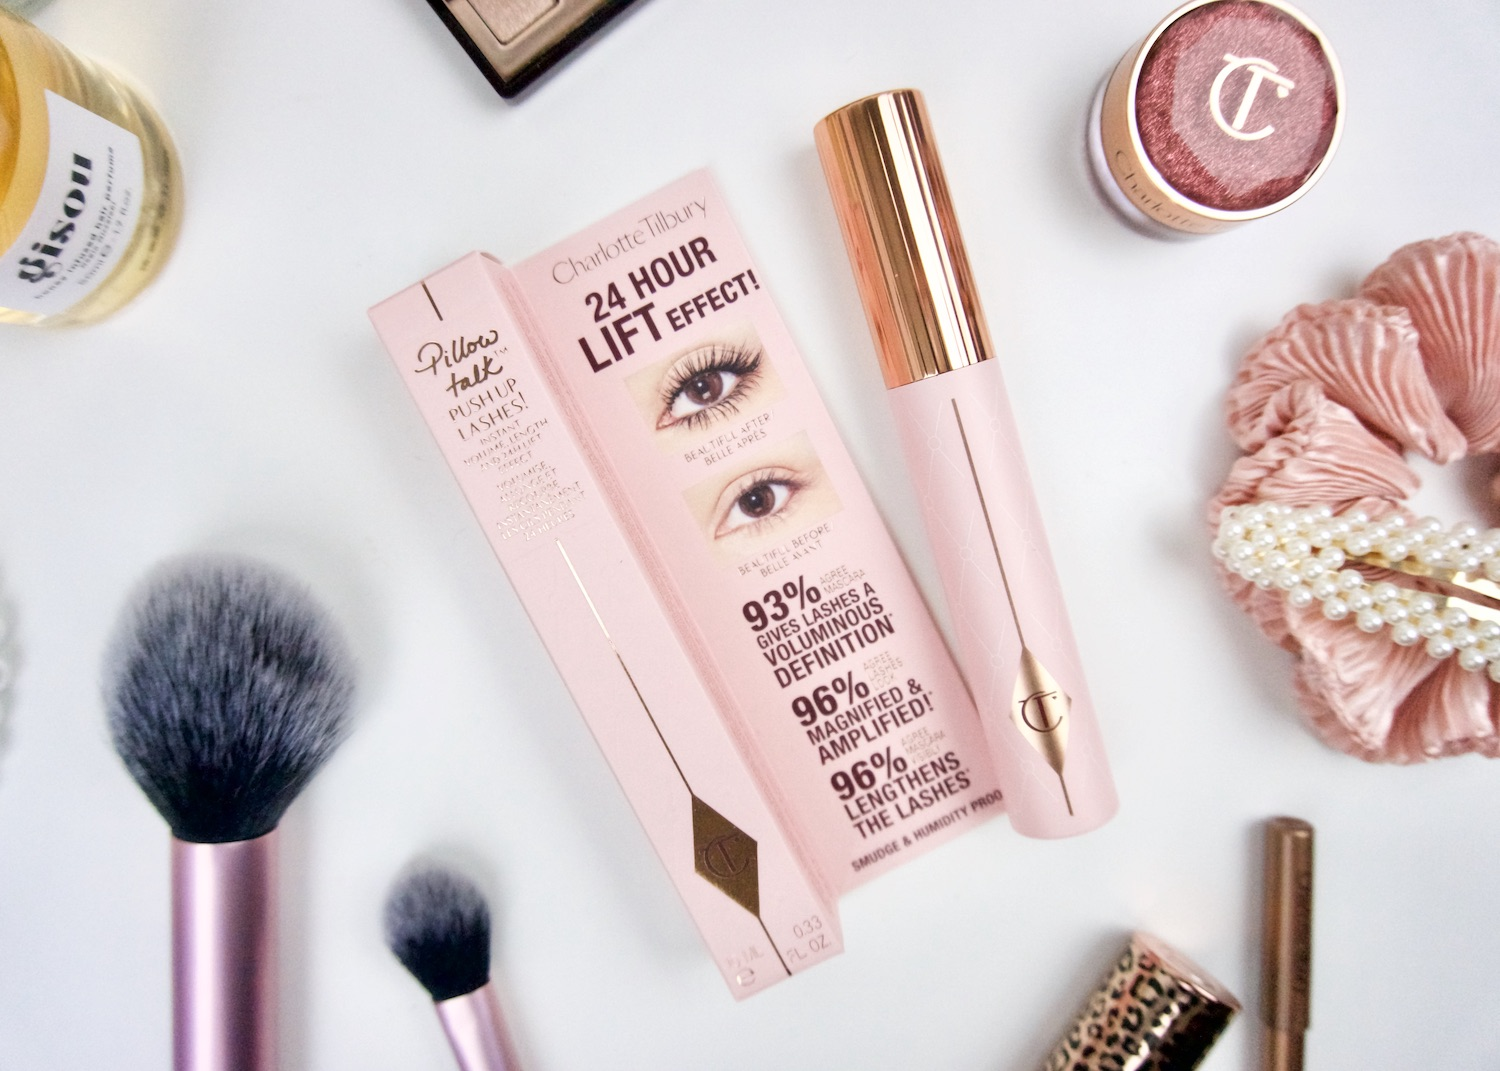 Charlotte Tilbury Pillow Talk Push Up Lashes Mascara